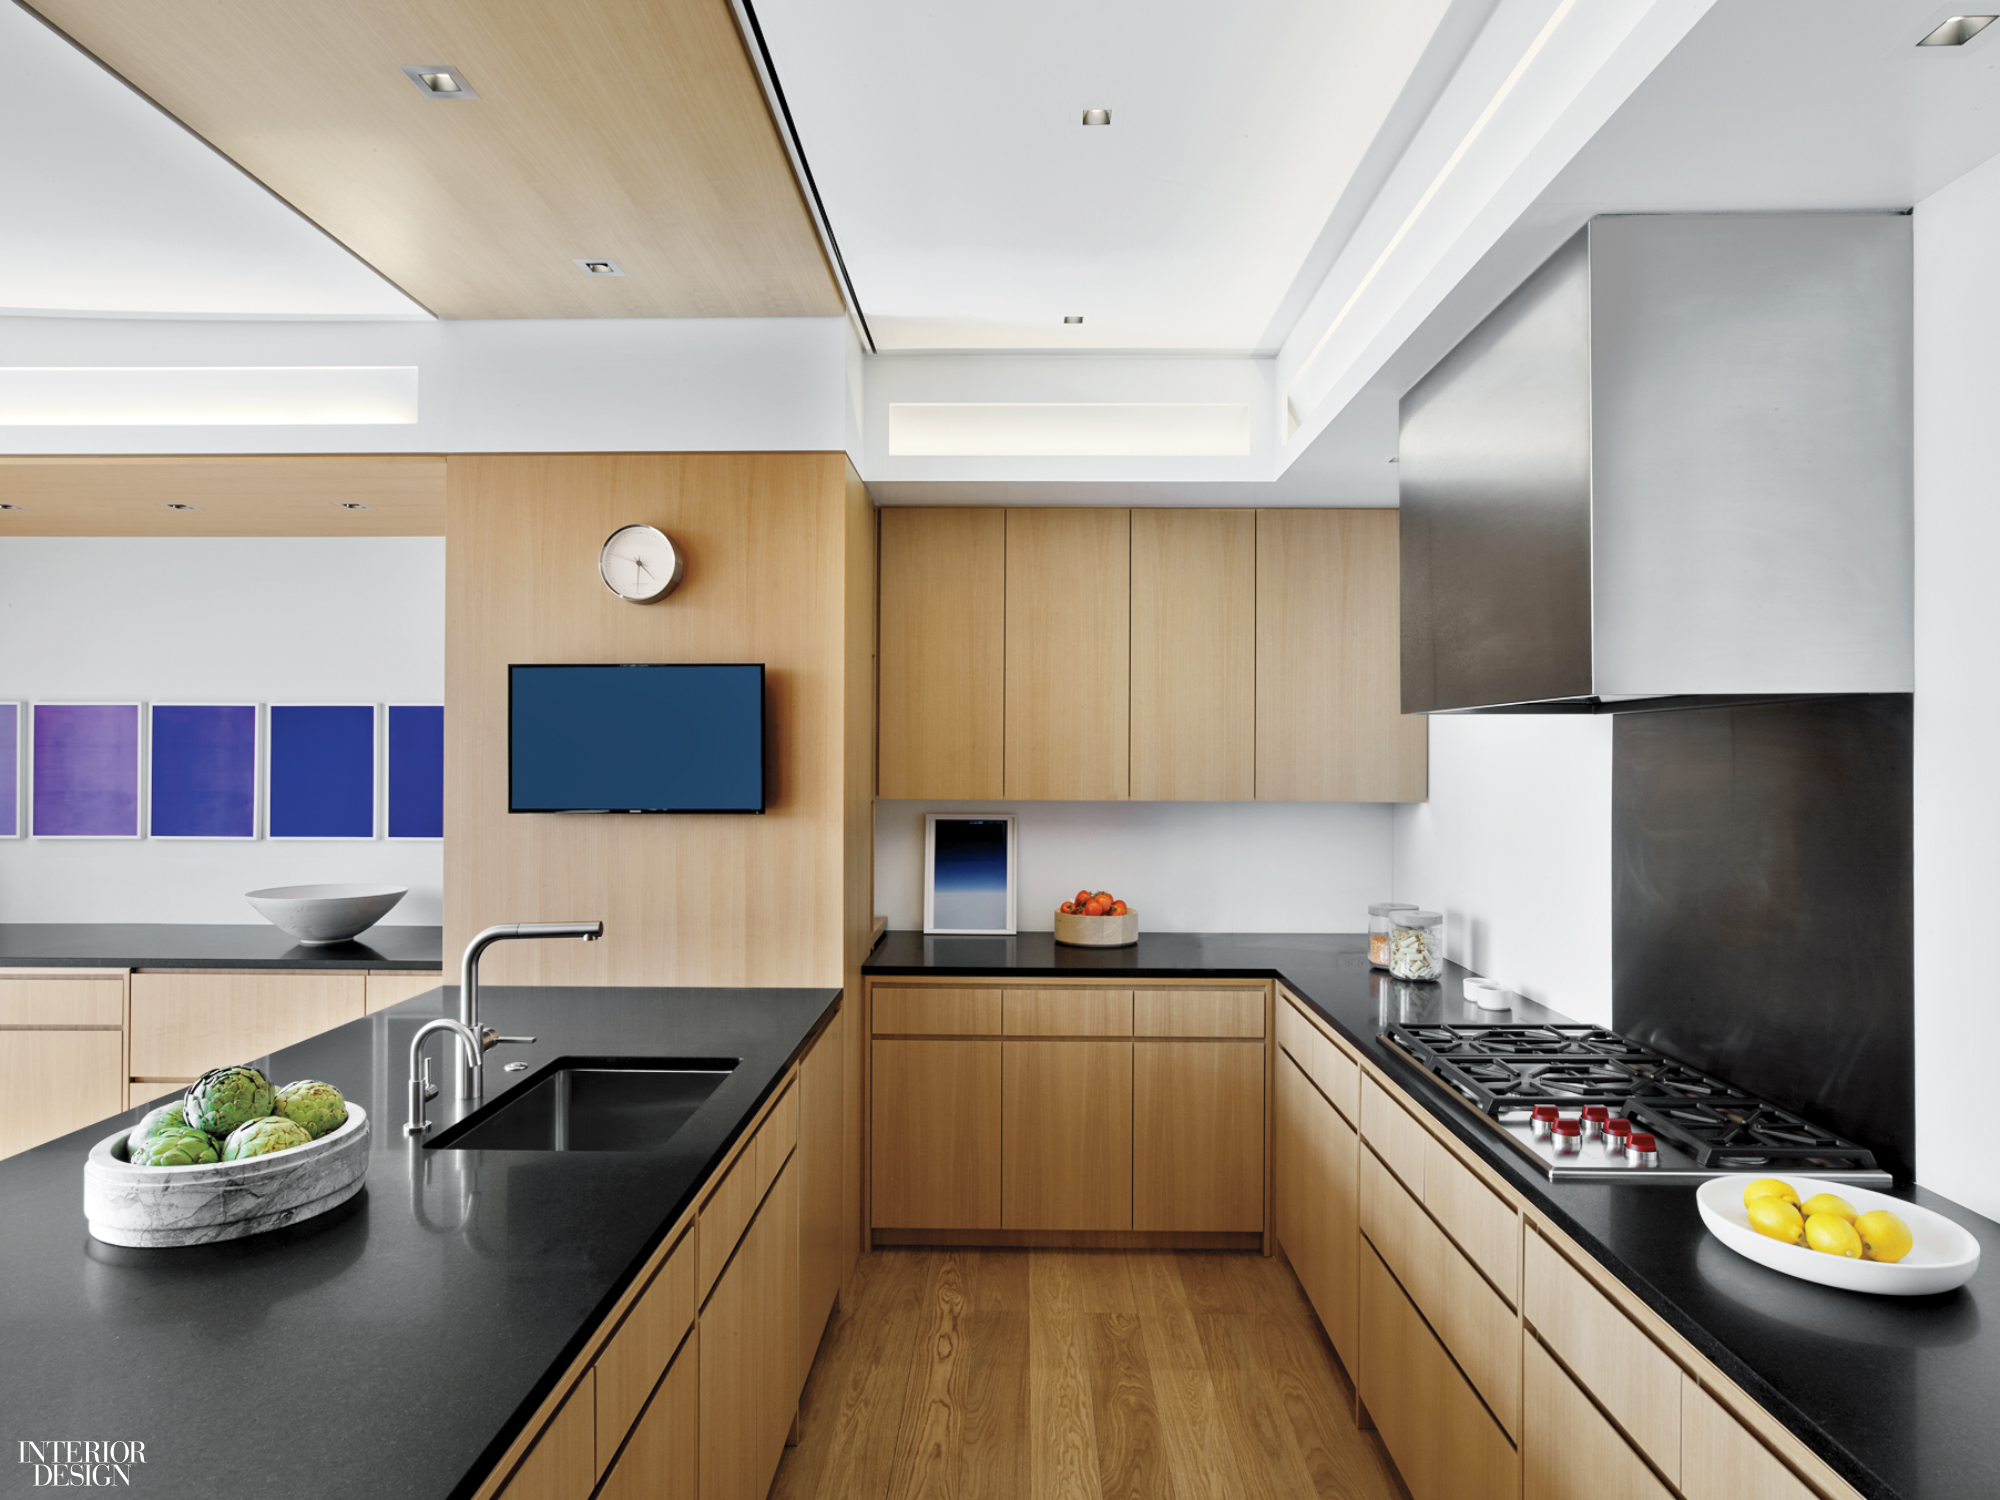 Absolute black granite countertops and polaroids by lisa oppenheim accent the kitchen photography by eric laignel